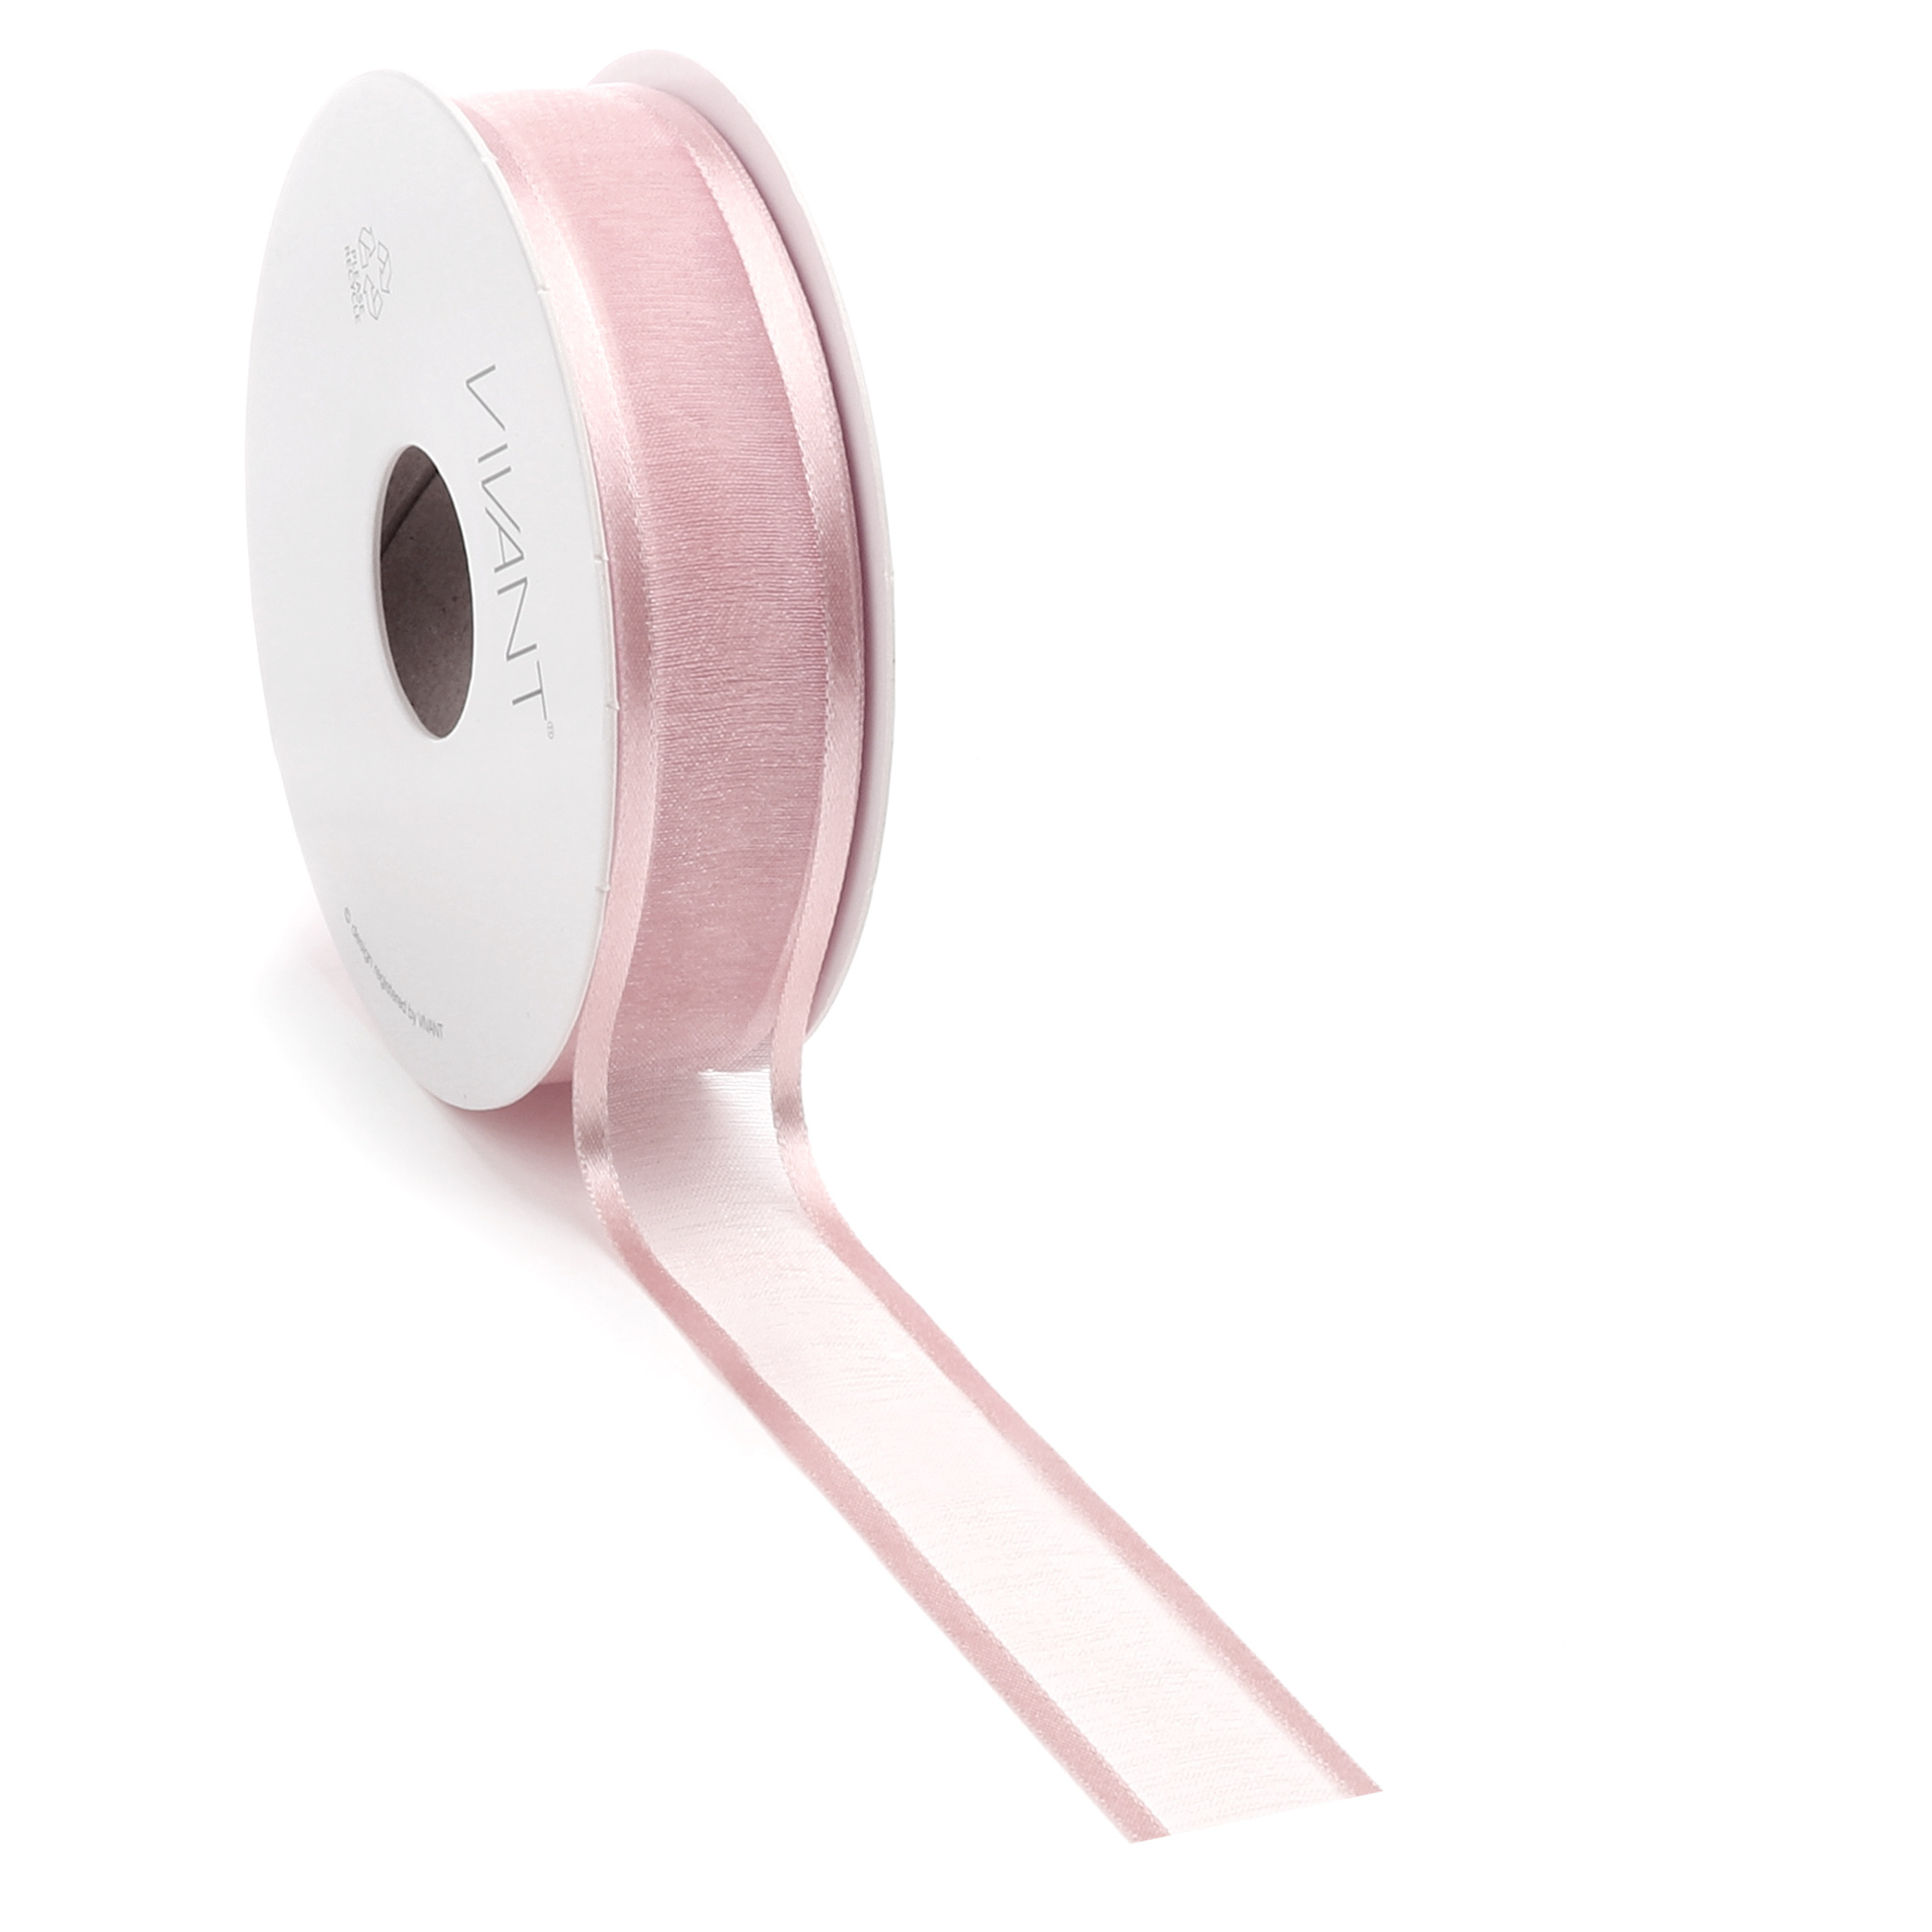 Prego woven edge Band - Old Rose